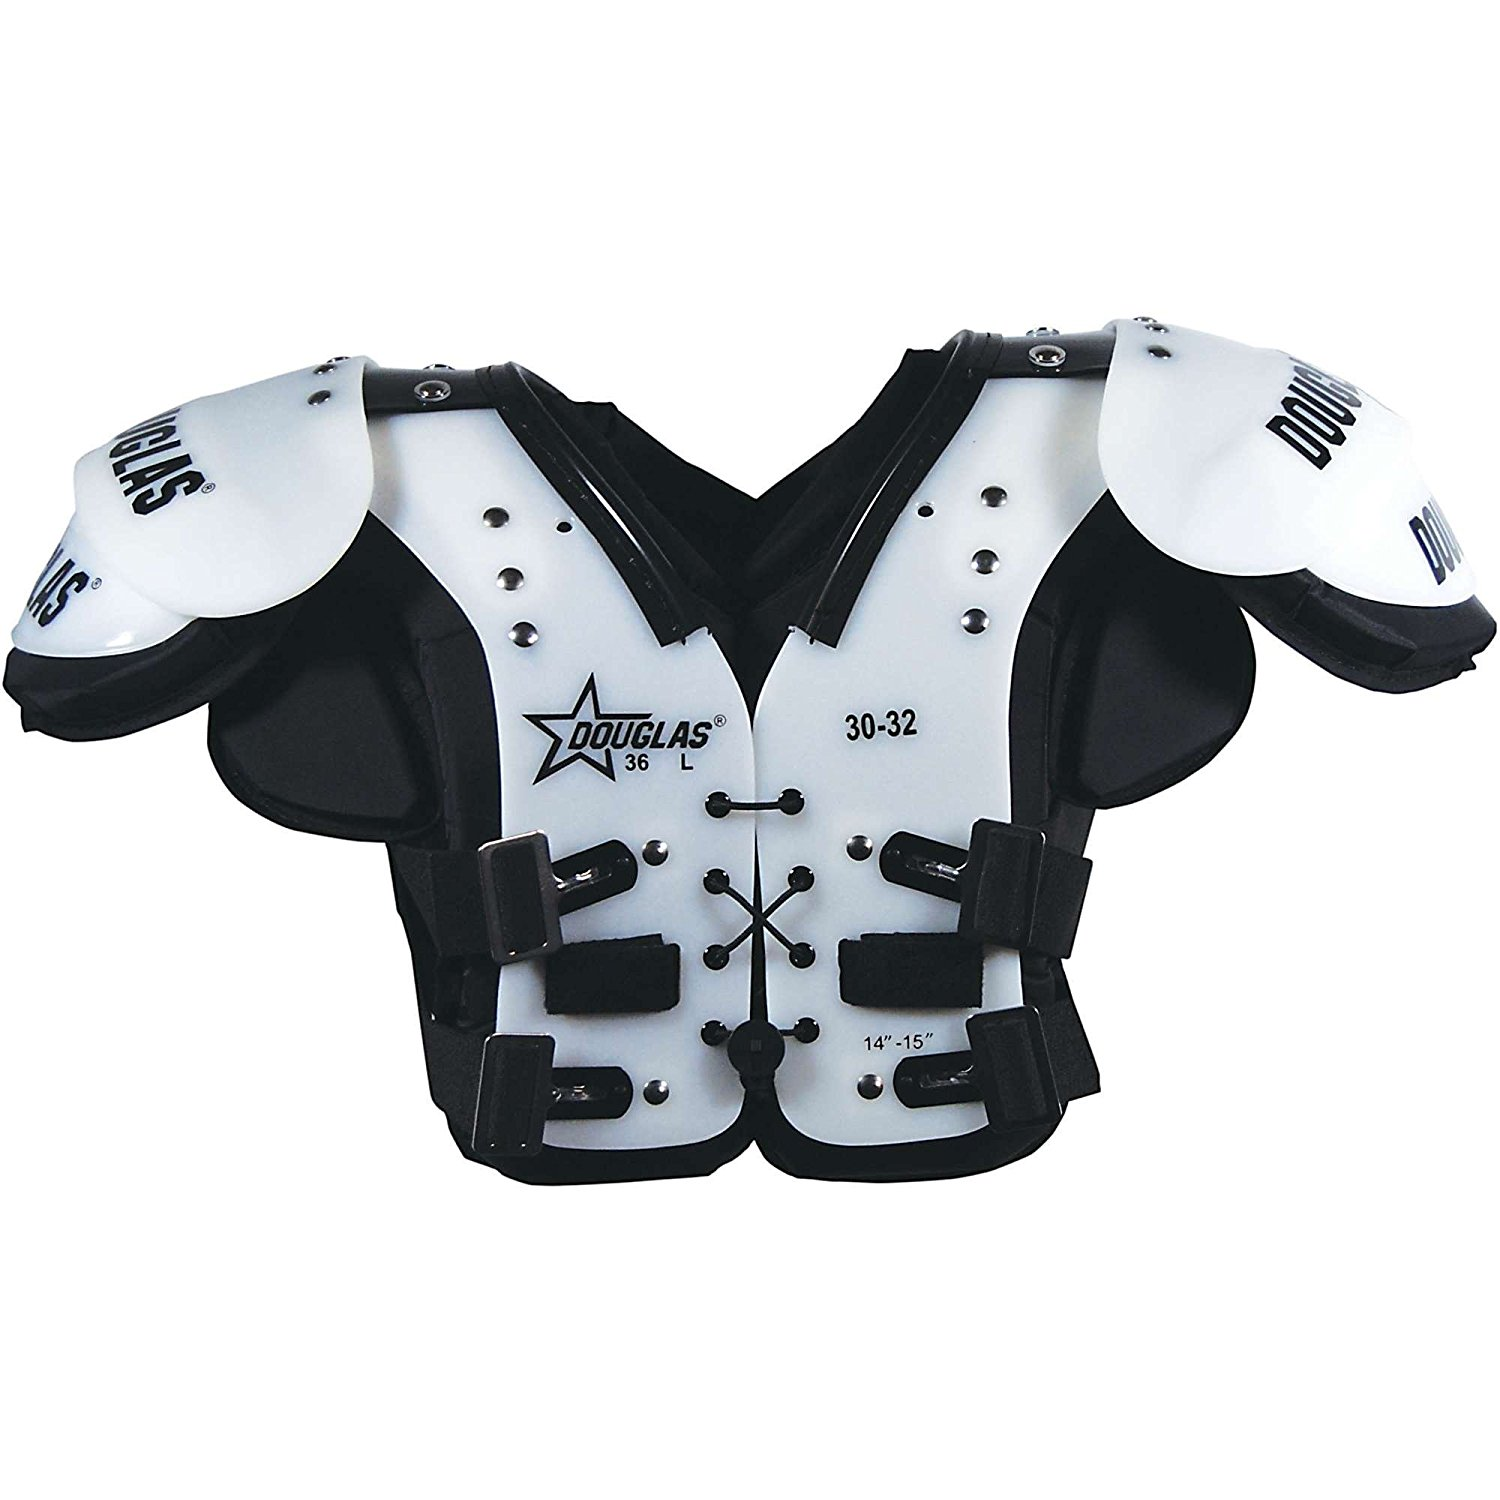 Douglas Jp36 Series Youth All-Position Football Shoulder Pads